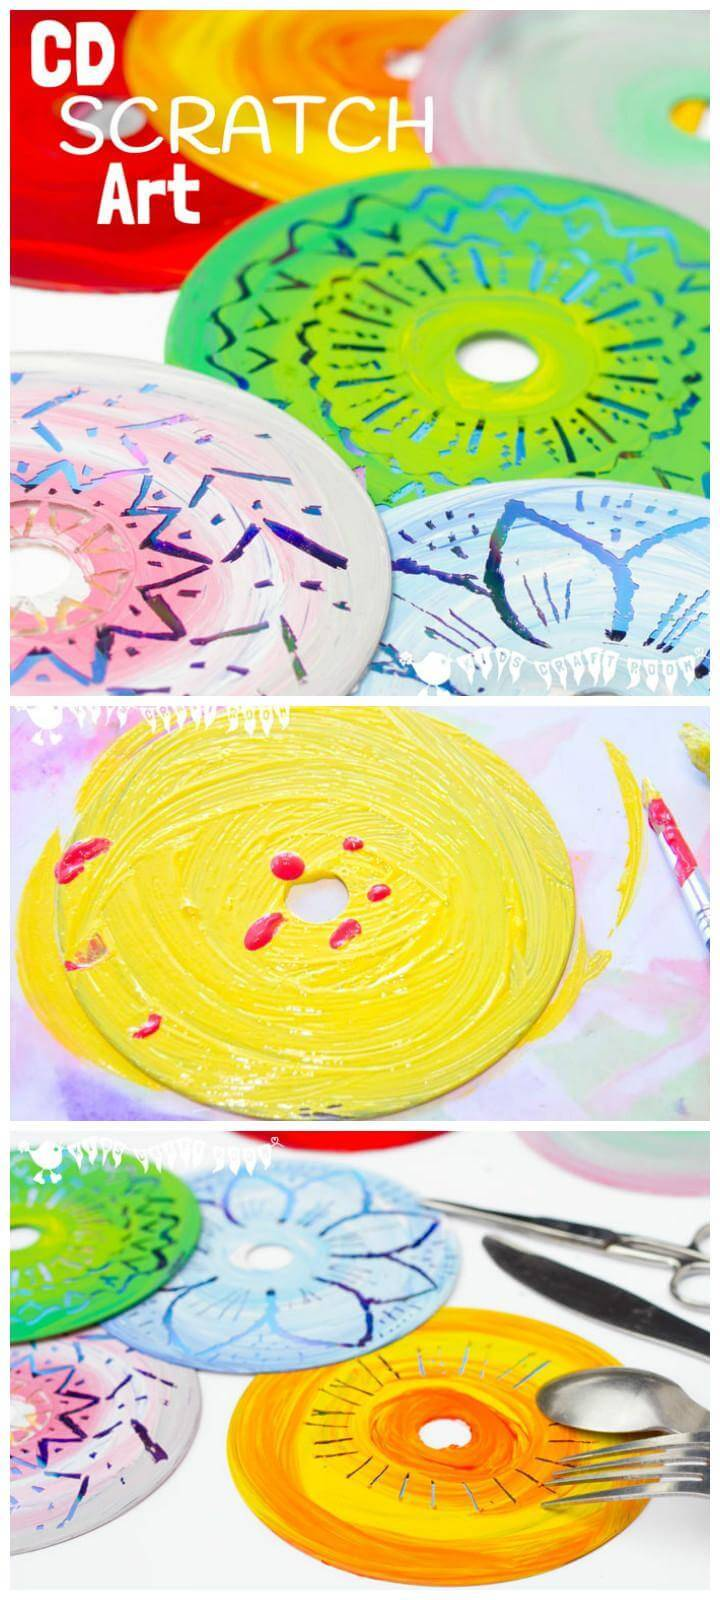 DIY Easy CD Scratch Art